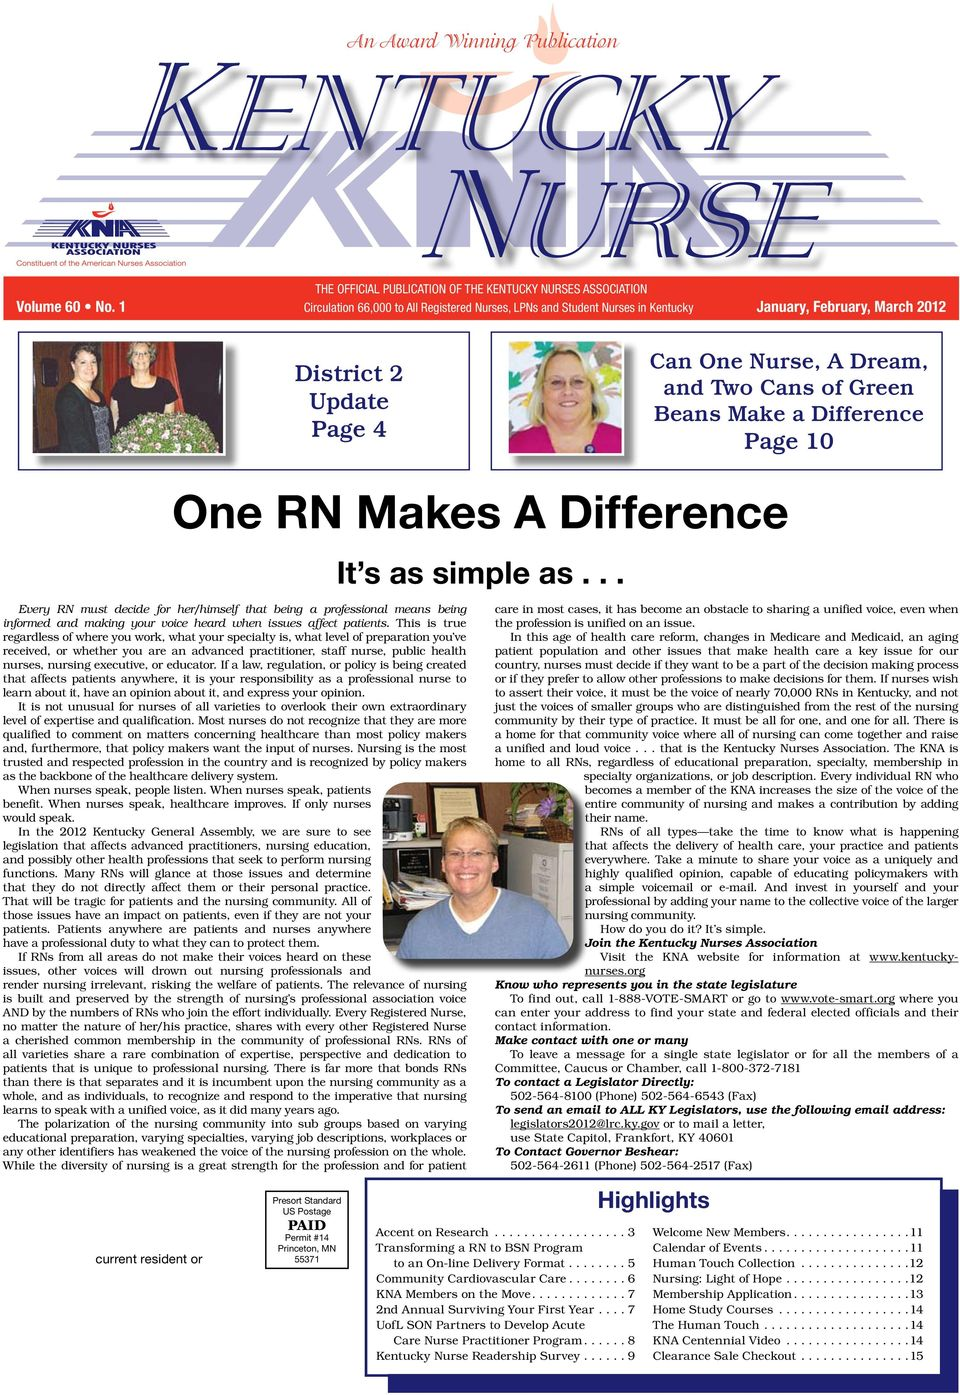 Difference Page 10 current resident or One RN Makes A Difference Every RN must decide for her/himself that being a professional means being informed and making your voice heard when issues affect